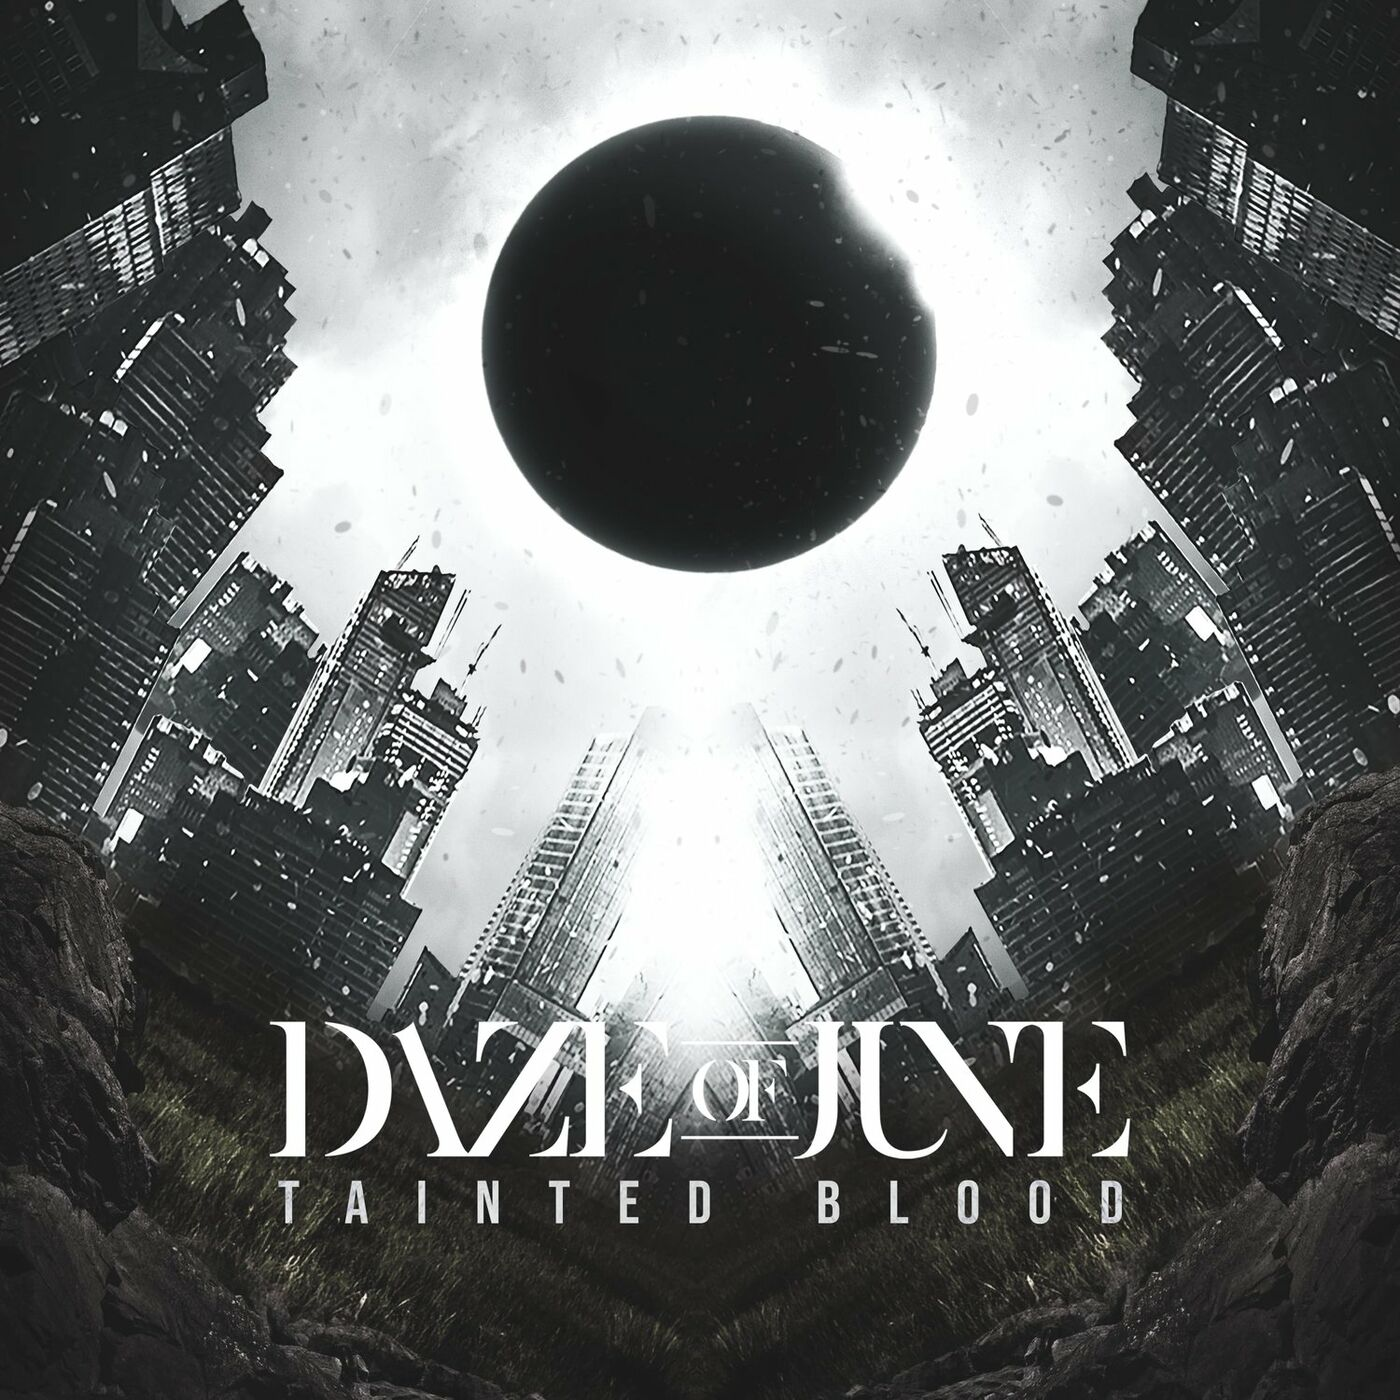 Daze of June - Tainted Blood (2021)